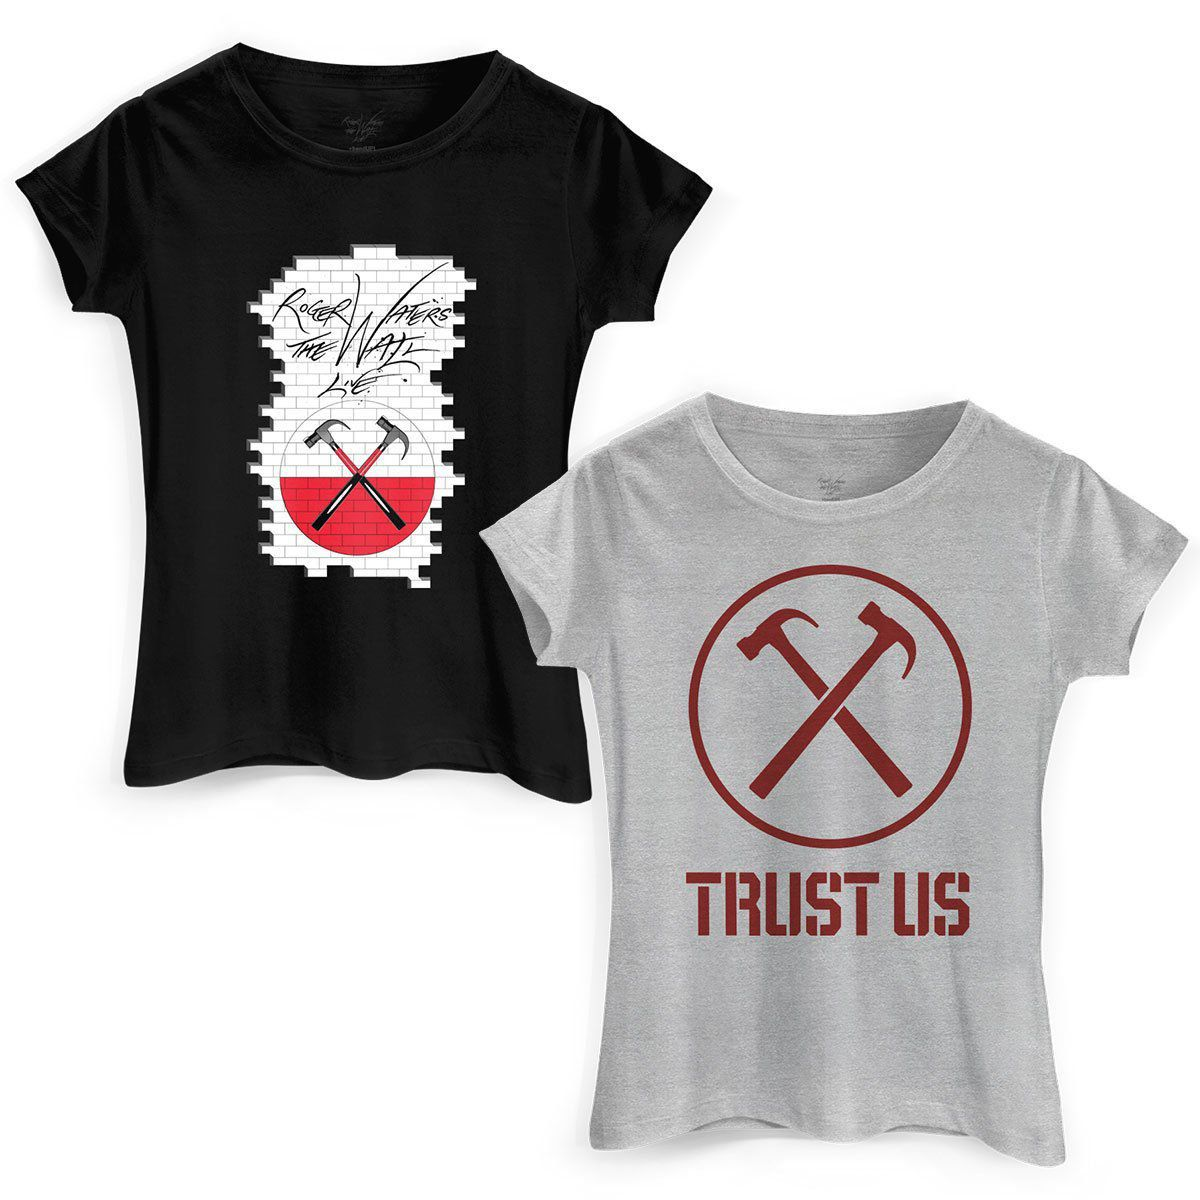 Kit Show 2 Camisetas Roger Waters The Wall e Trust Us Feminina  - bandUP Store Marketplace